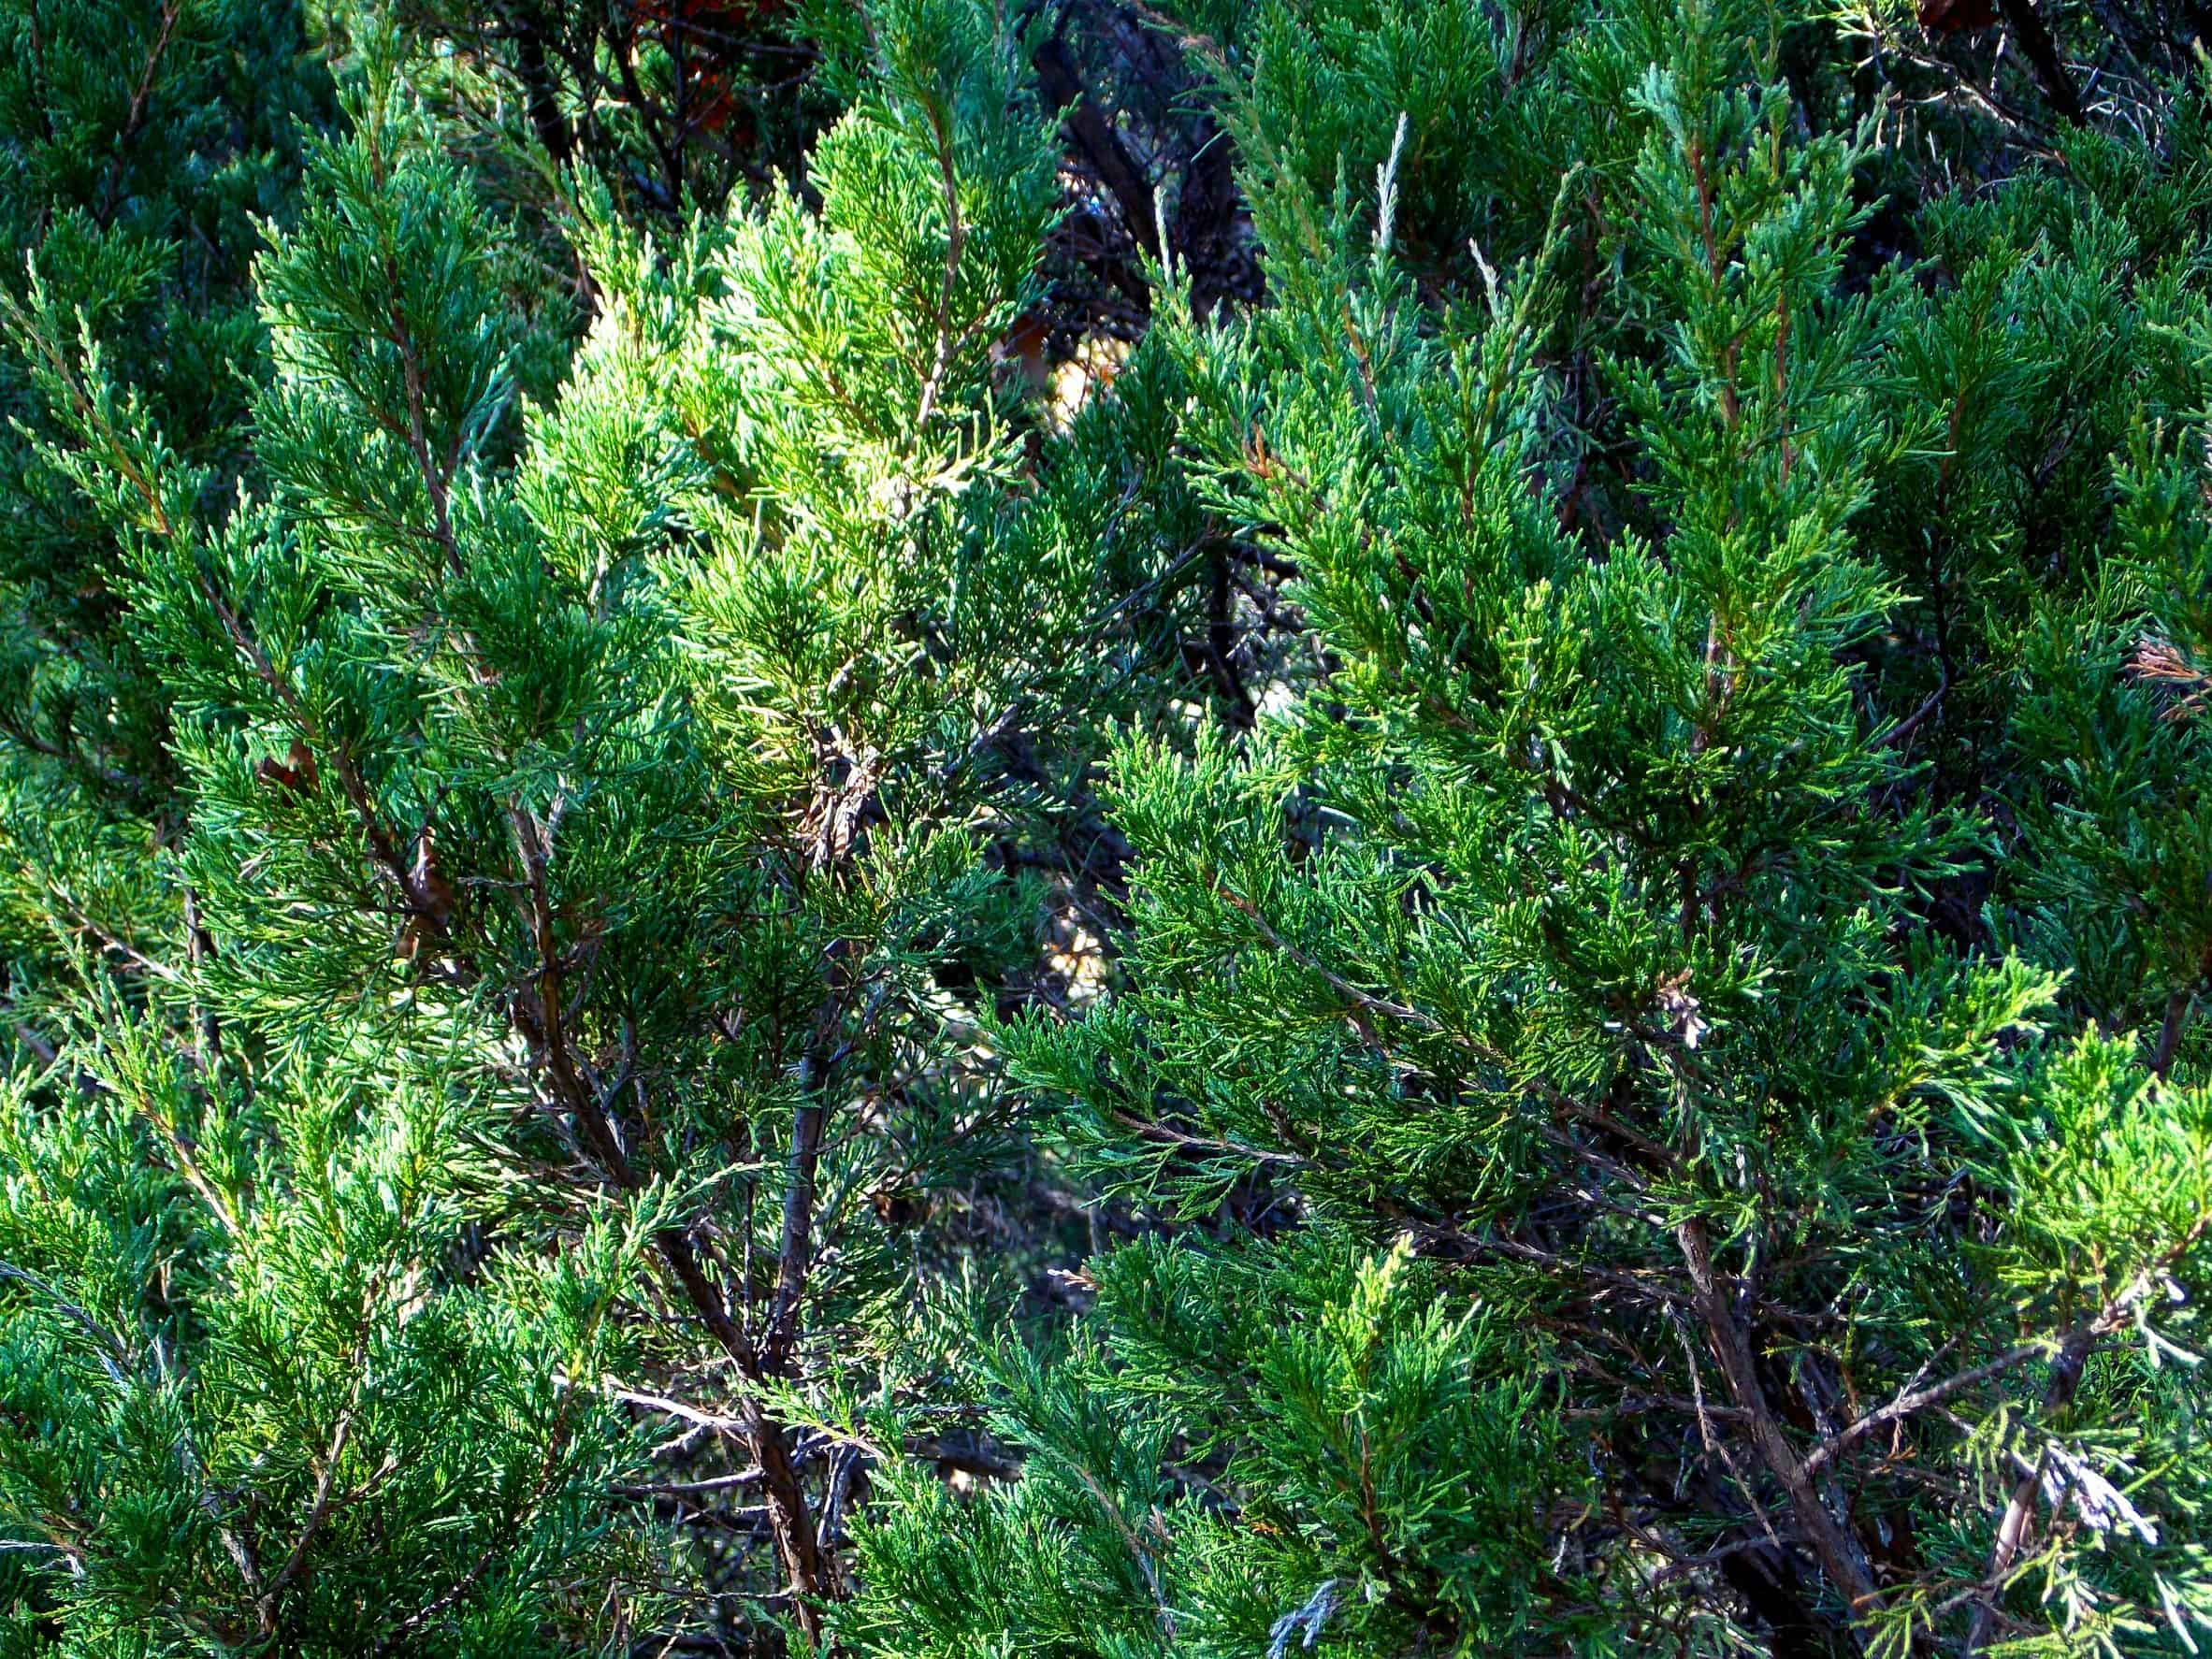 Eastern red cedar is not only an attractive evergreen but it is tough, too